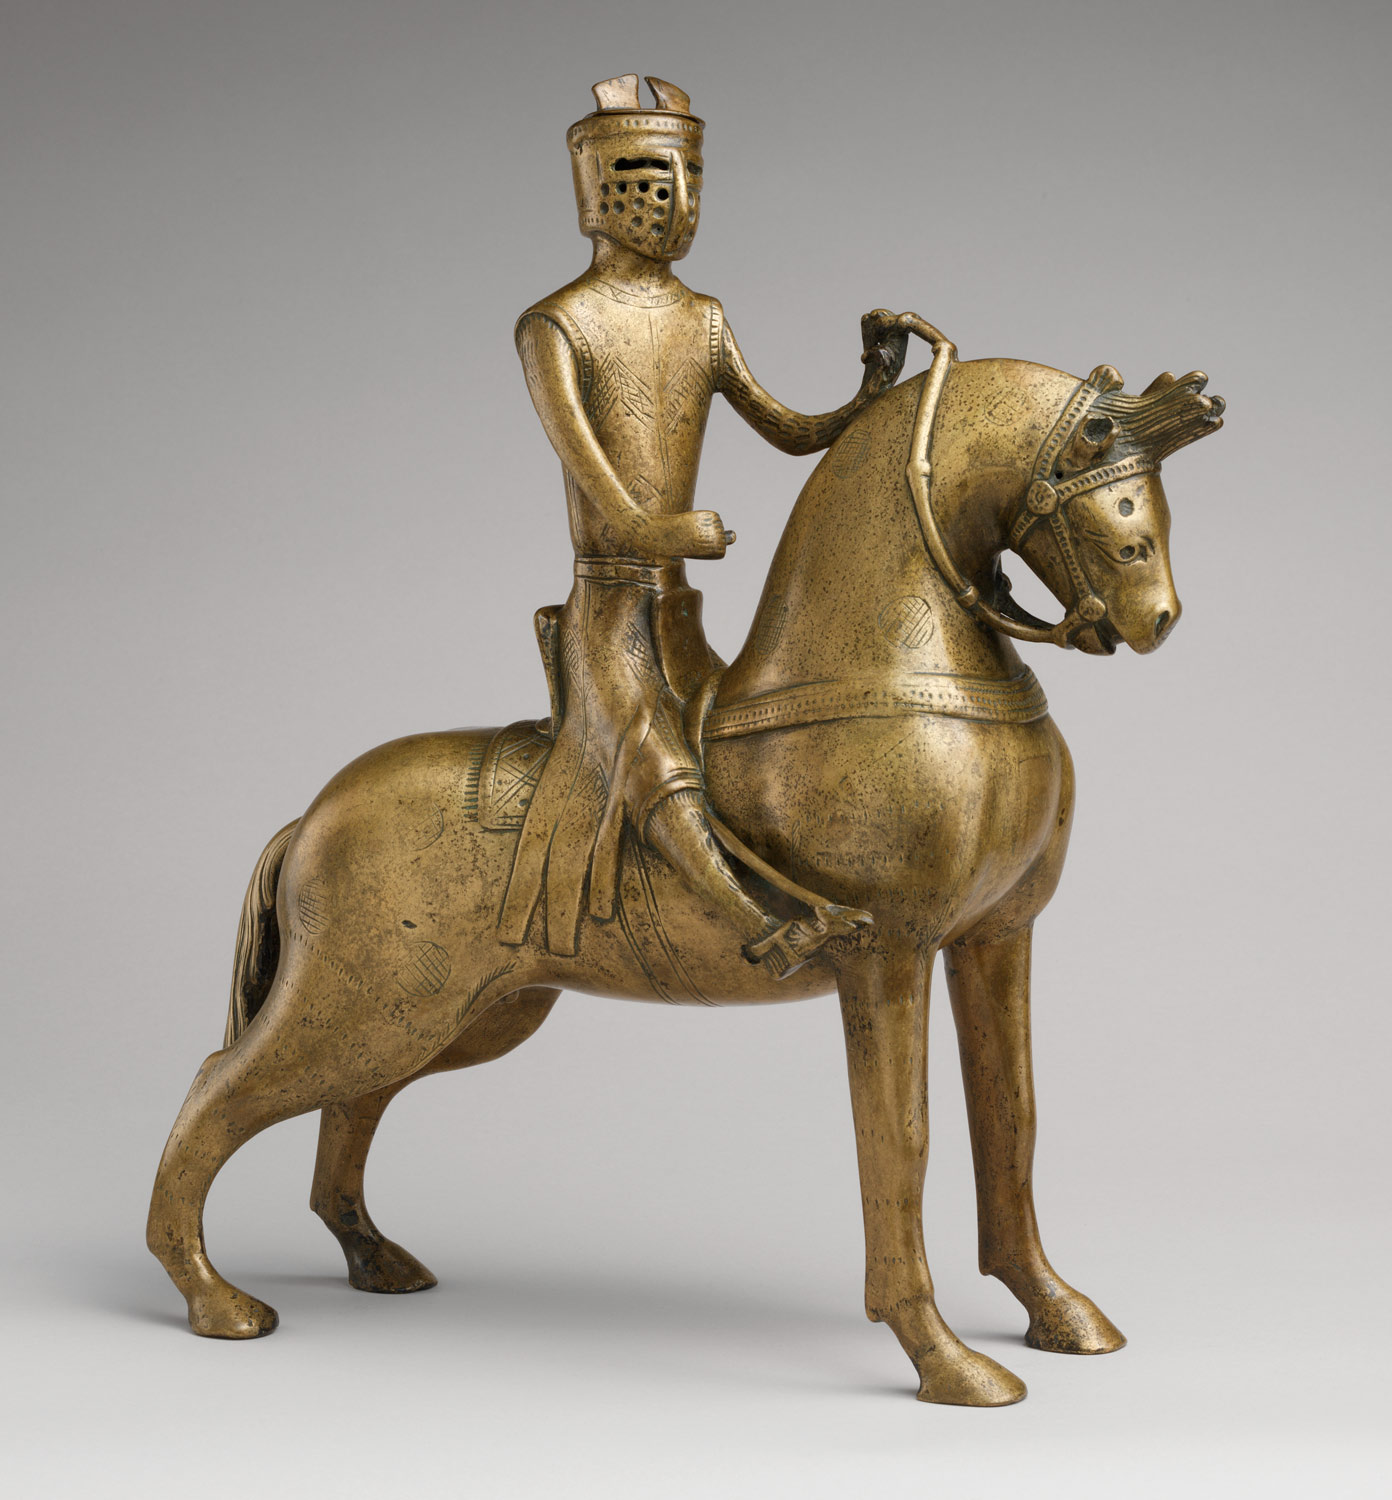 Aquamanile in the Form of a Knight on Horseback